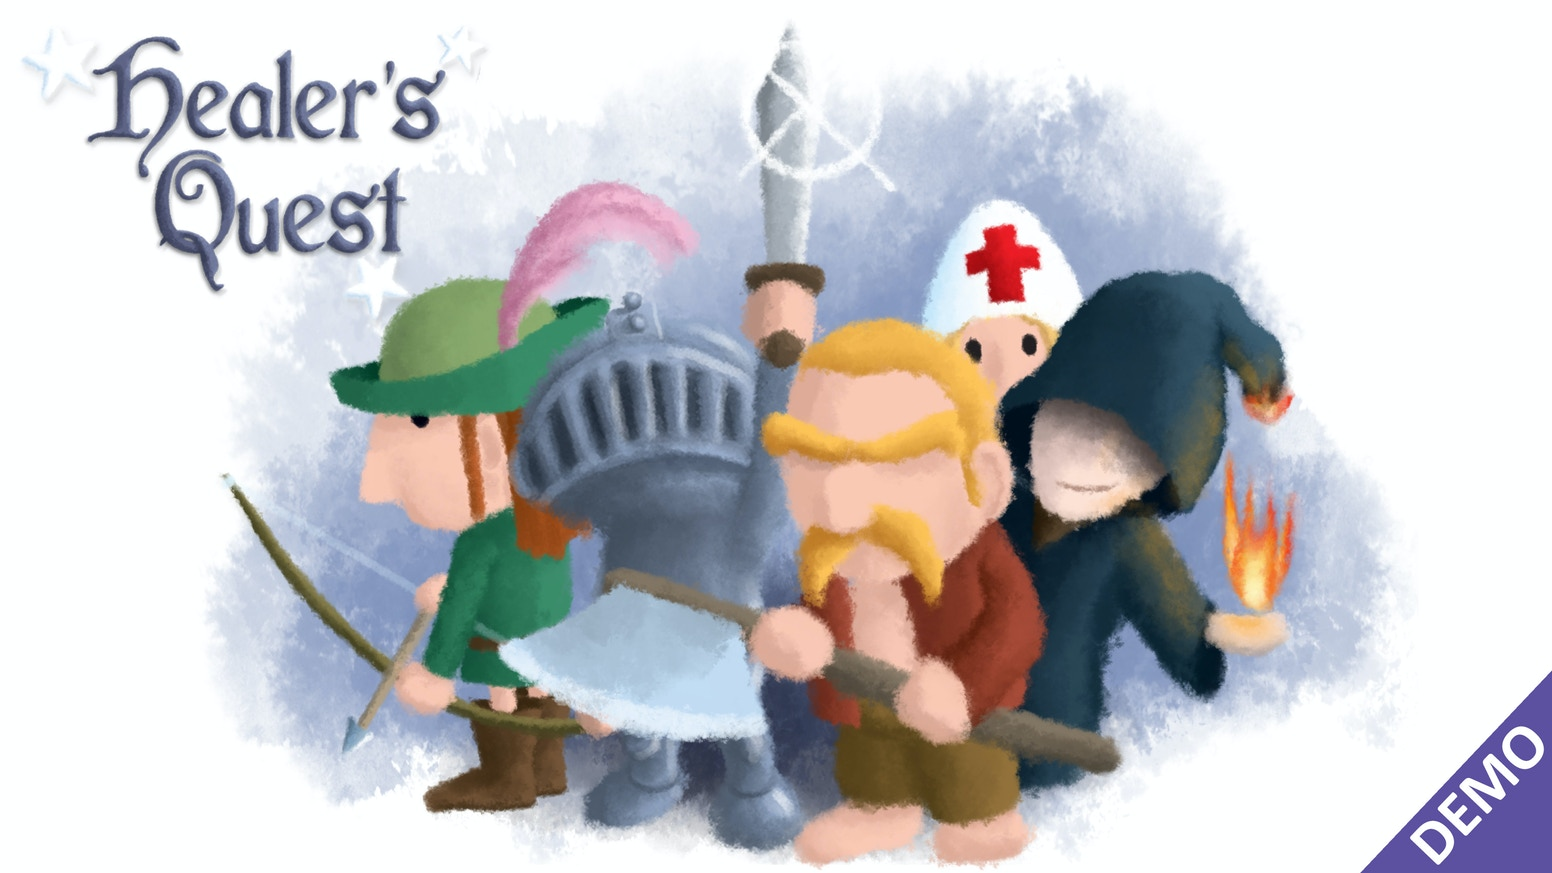 A lighthearted RPG in which you play solely as the healer of a crappy team of adventurers. (PC)